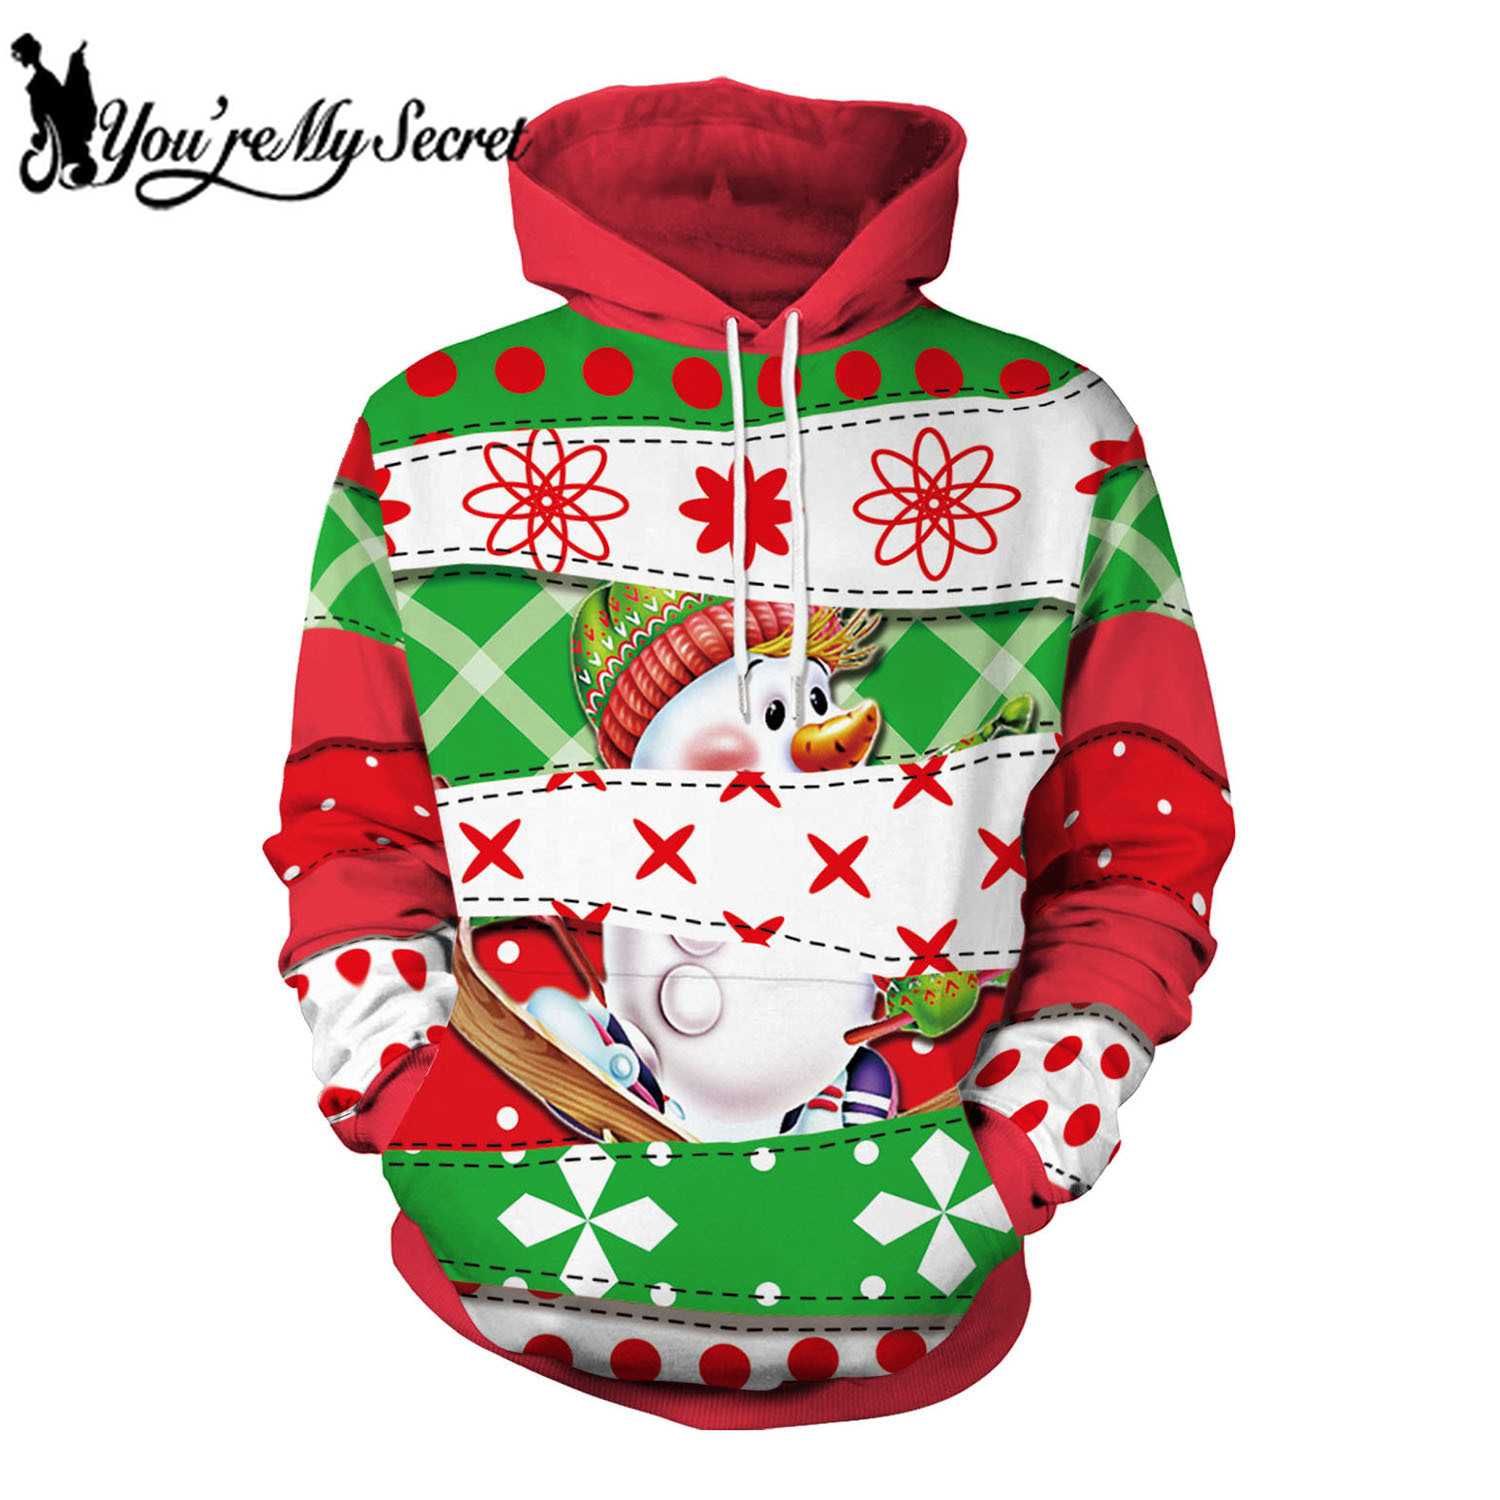 [You're My Secret] 2019 New Arrival Christmas Festival Long Sleeve Warm Hooded Hoodie for Women Men with Kangaroo Pockets